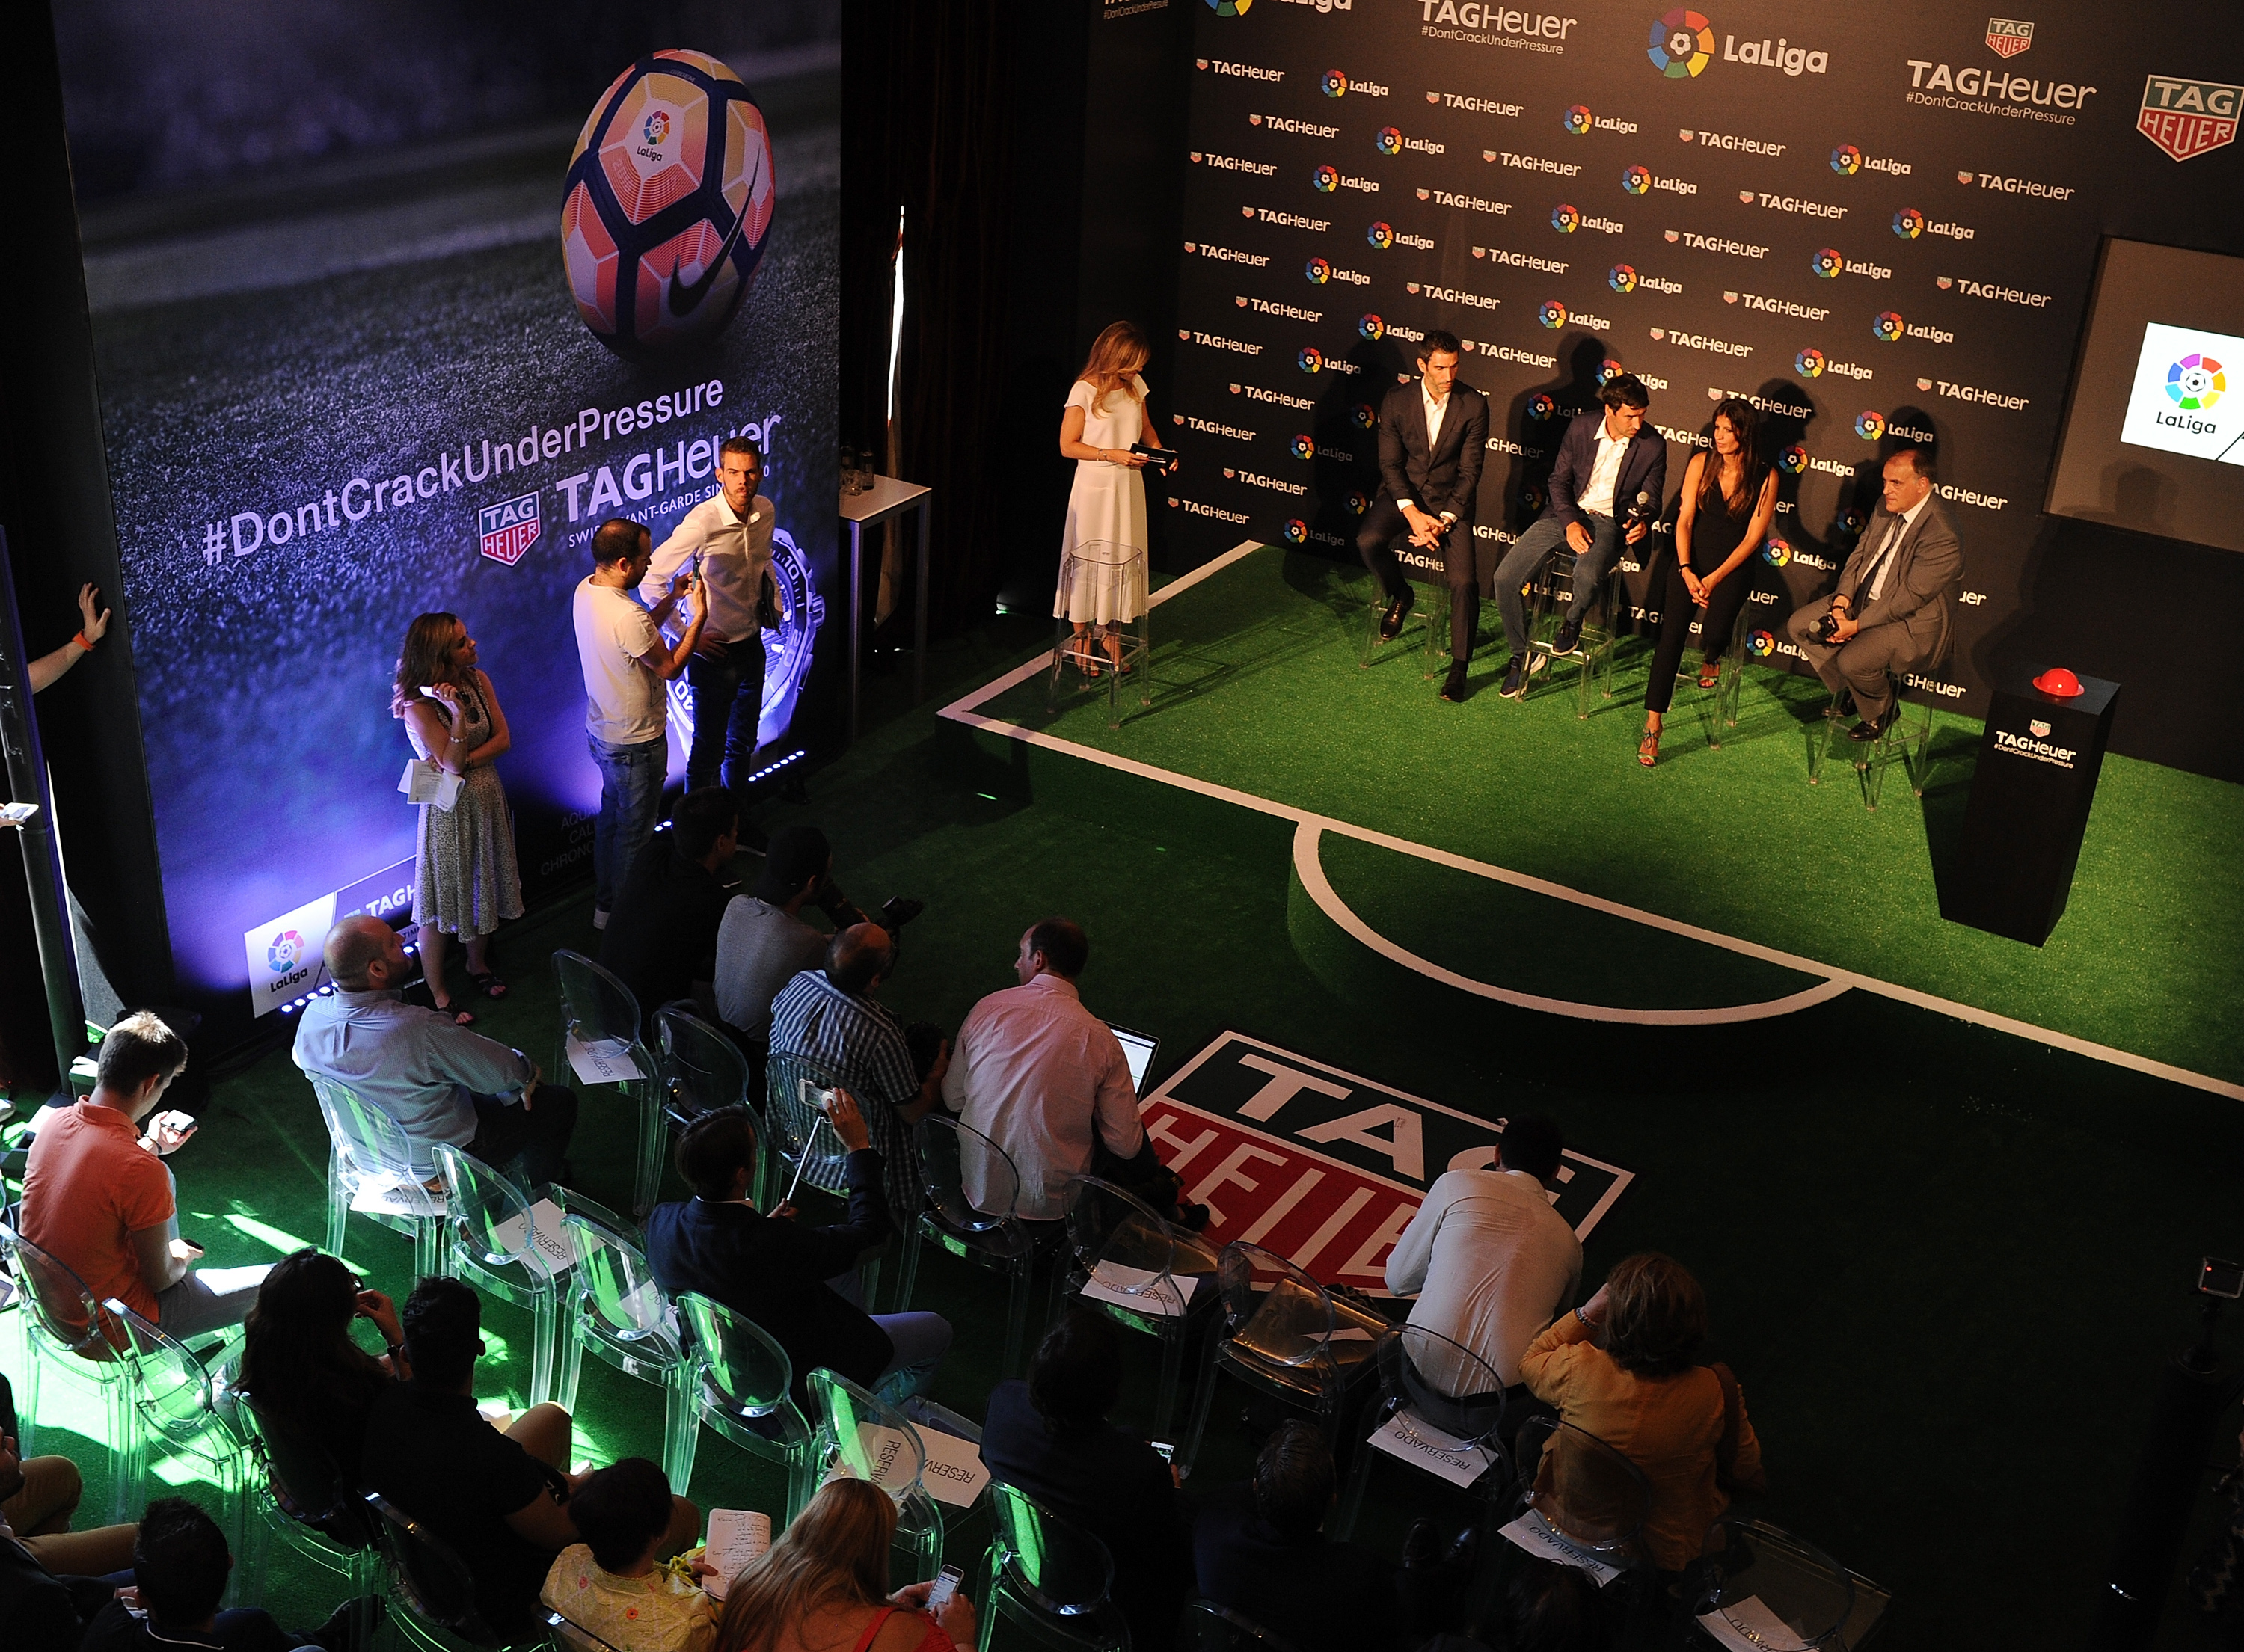 MADRID, SPAIN - JULY 13: (From L to R) Former players Fernando Sanz and Raul Gonzalez are accompanied by Blanca Panzano, Managing Director Spain of TAG Heuer and Javier Tebas, President of La Liga during the press conference to announce TAG Heuer as the Official Timekeeper and Official Sponsor of La Liga at the Royal Theatre on July 13, 2016 in Madrid, Spain. (Photo by Denis Doyle/Getty Images for Tag Heuer)